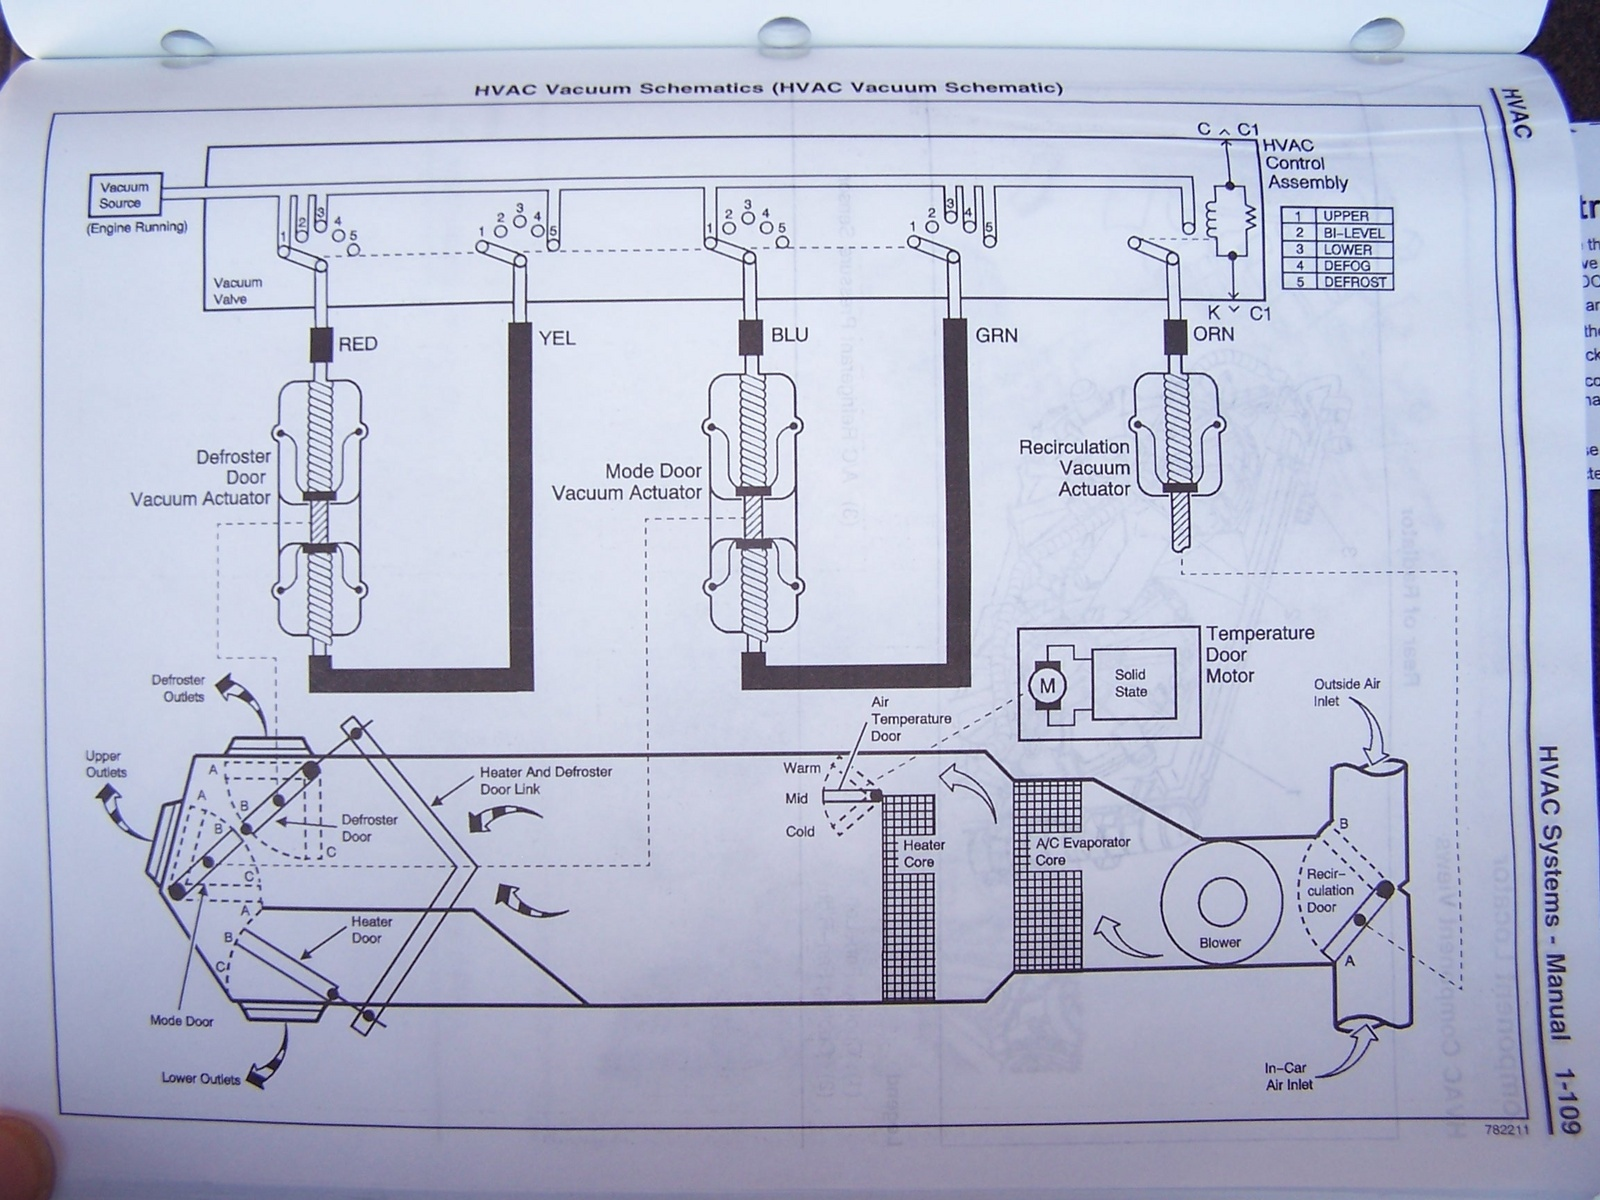 hight resolution of 2004 impala hvac schematic wiring diagram 2004 impala hvac schematic